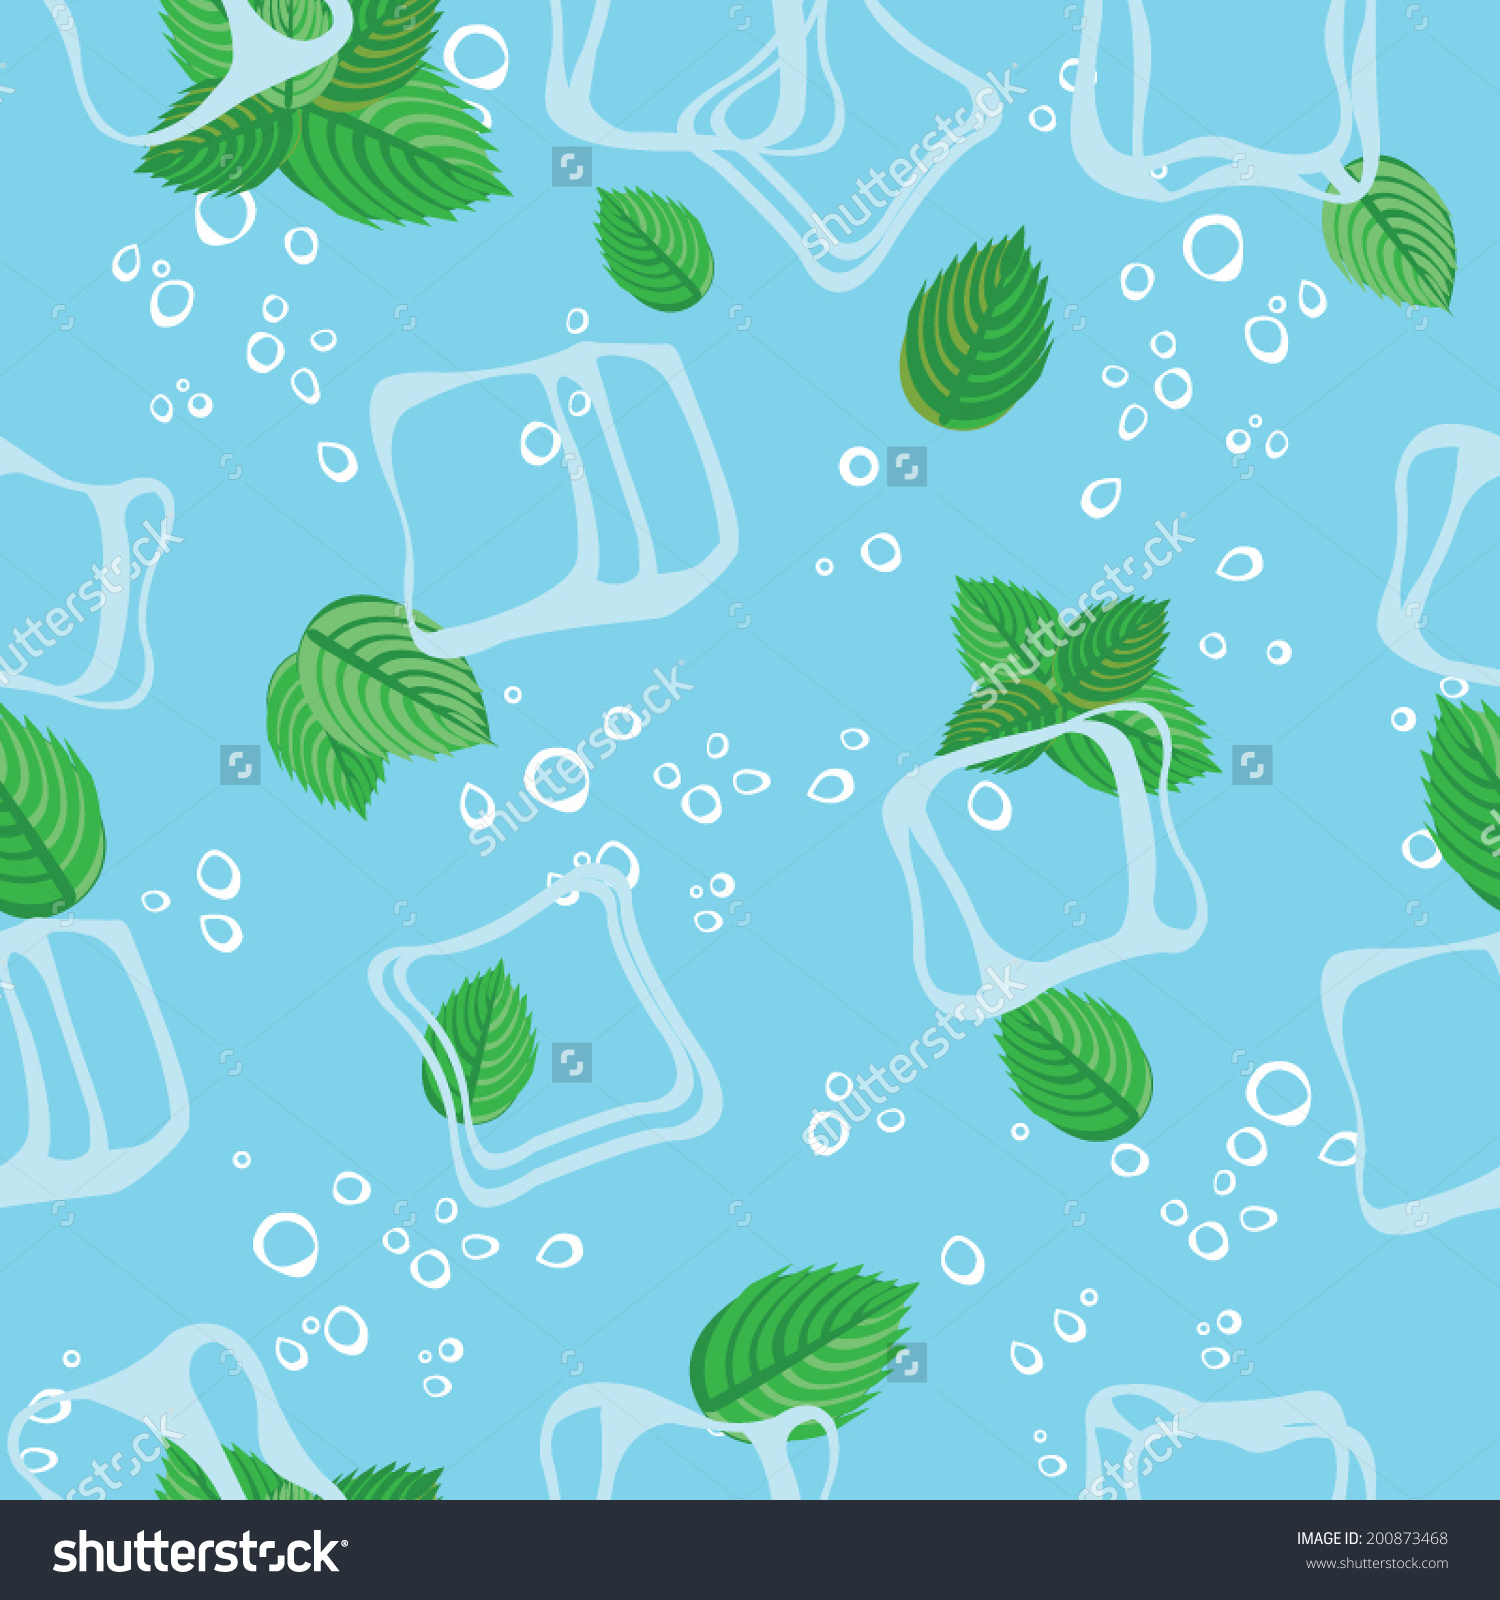 Mojito Mint Bubbles And Ice Cubes Blue Seamless Vector Pattern.